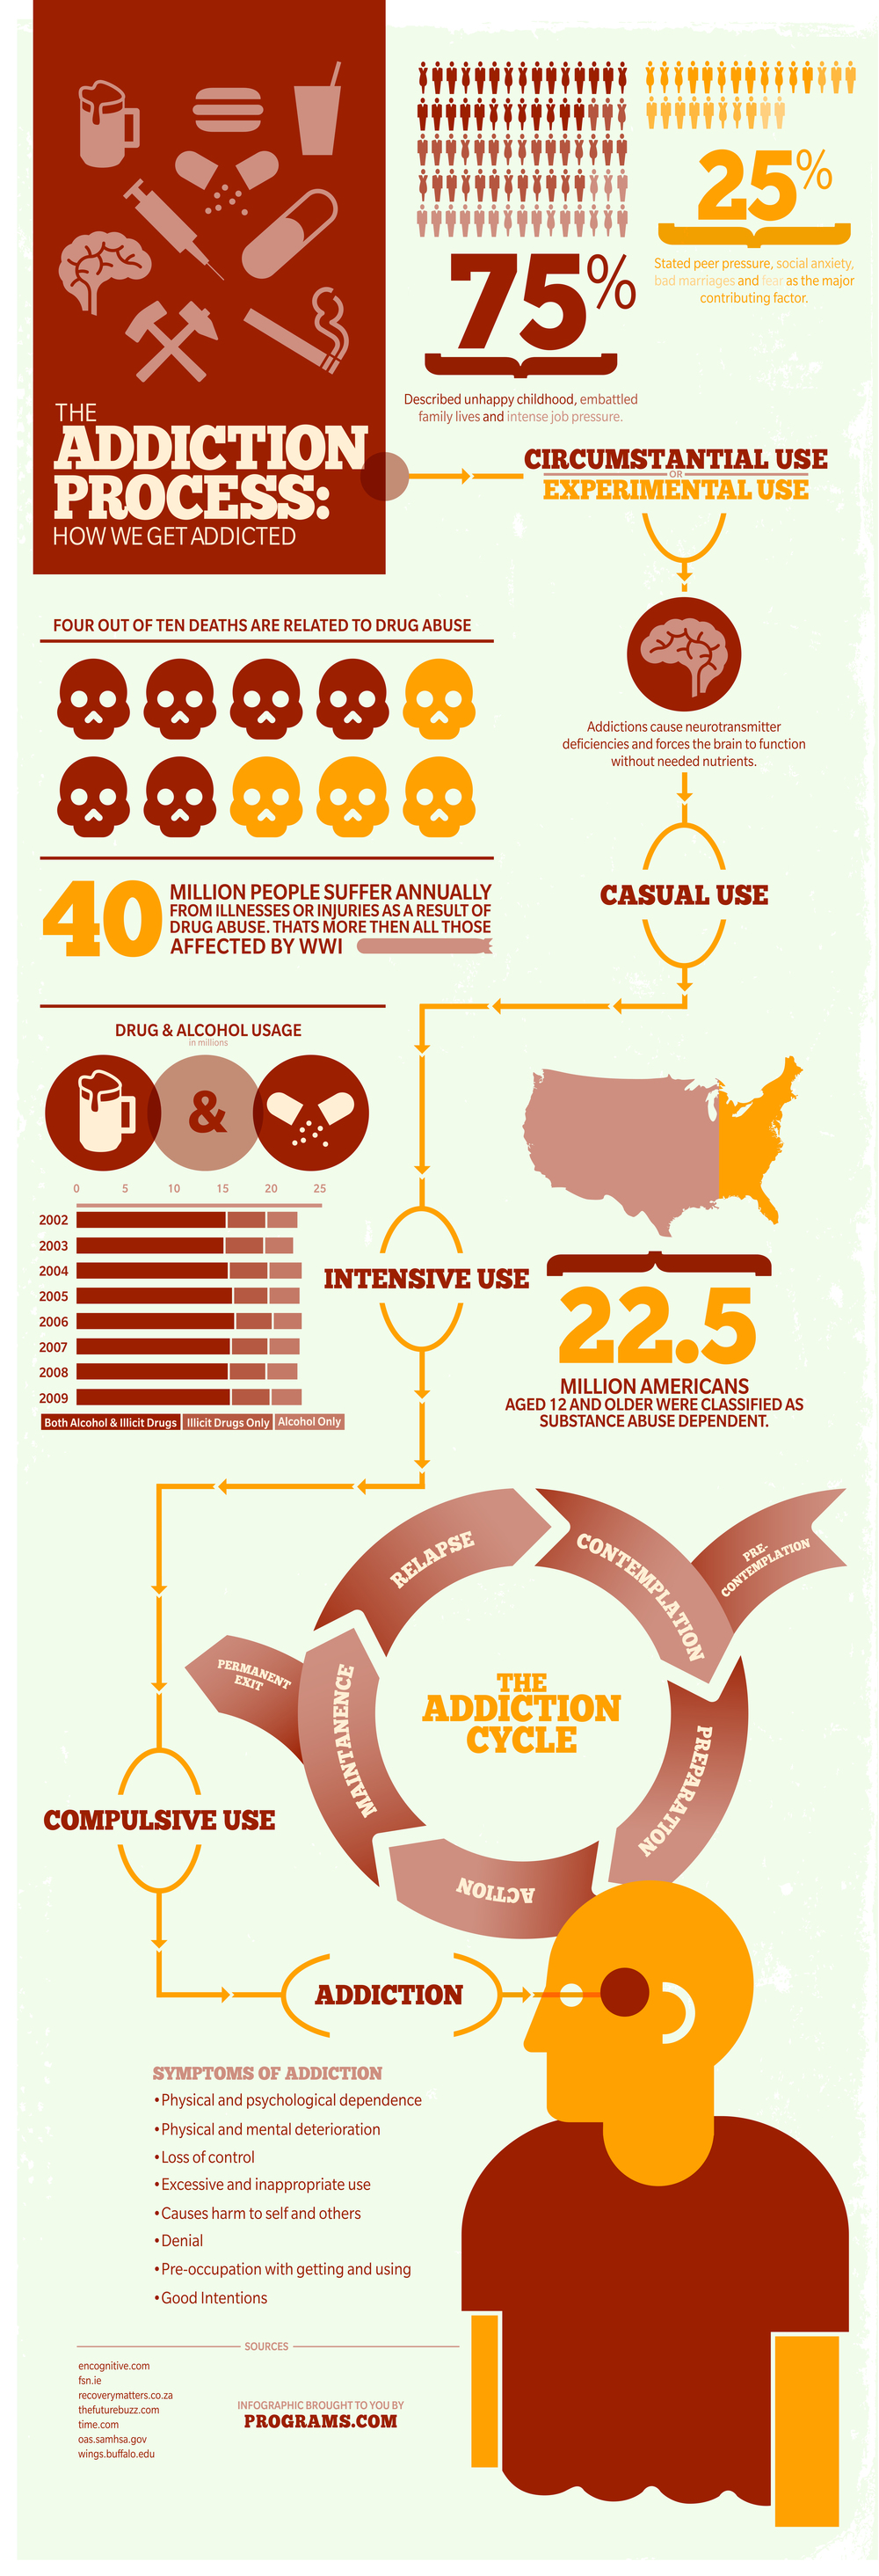 The Addiction Process Infographic